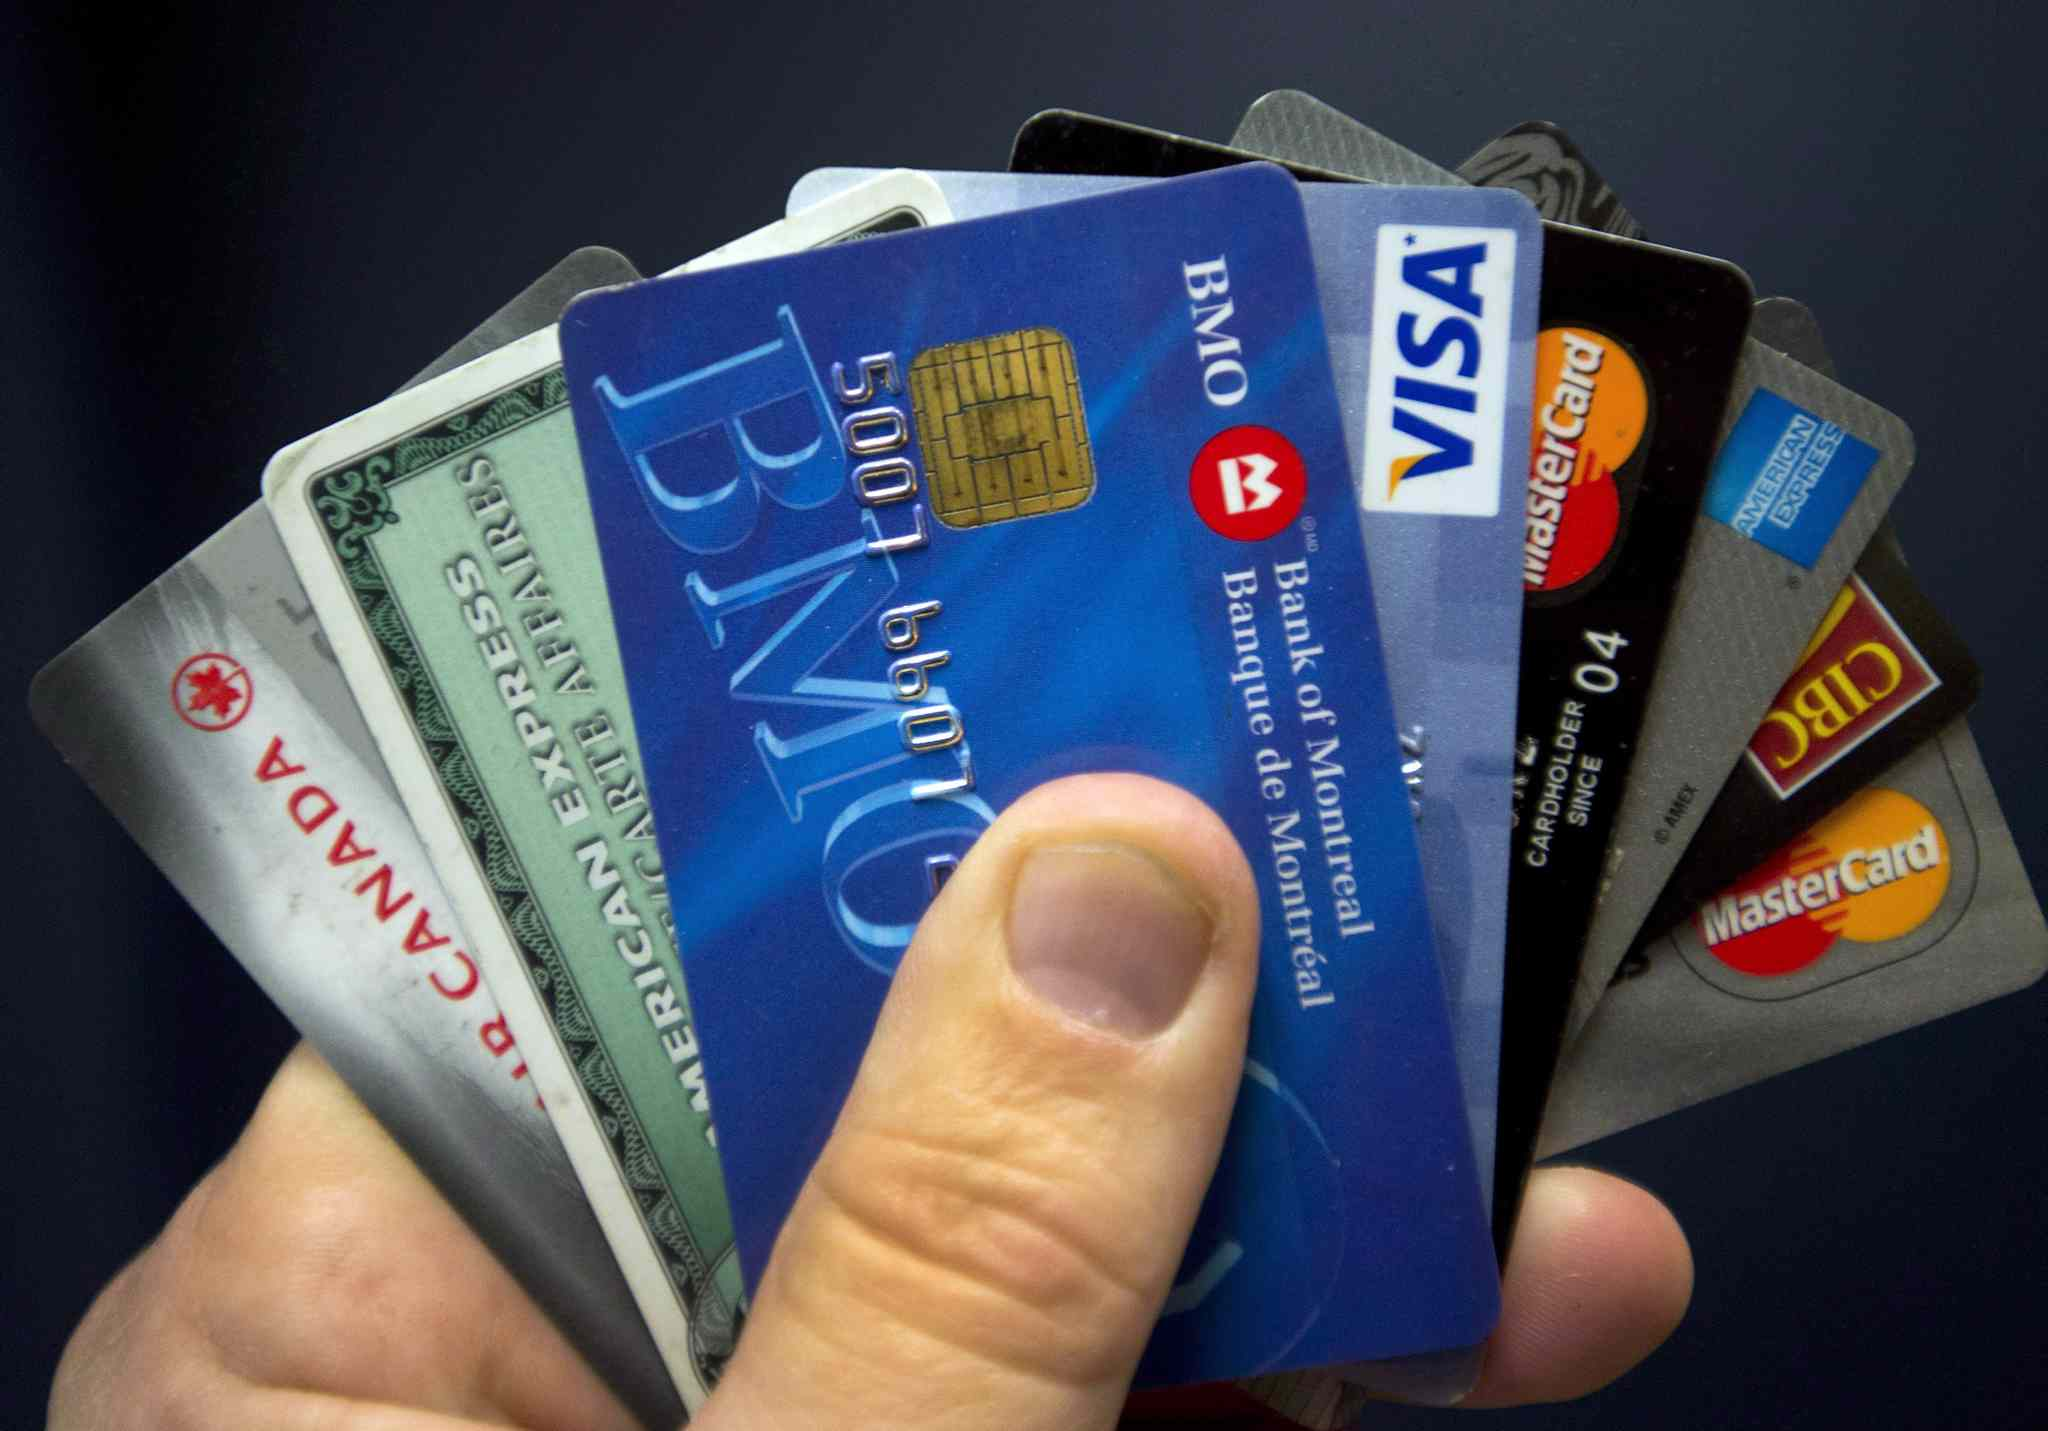 Up to three-quarters of Canadians say they are in debt, and the average debt load rose by 21 per cent to $15,920 over the last year, an RBC survey said.